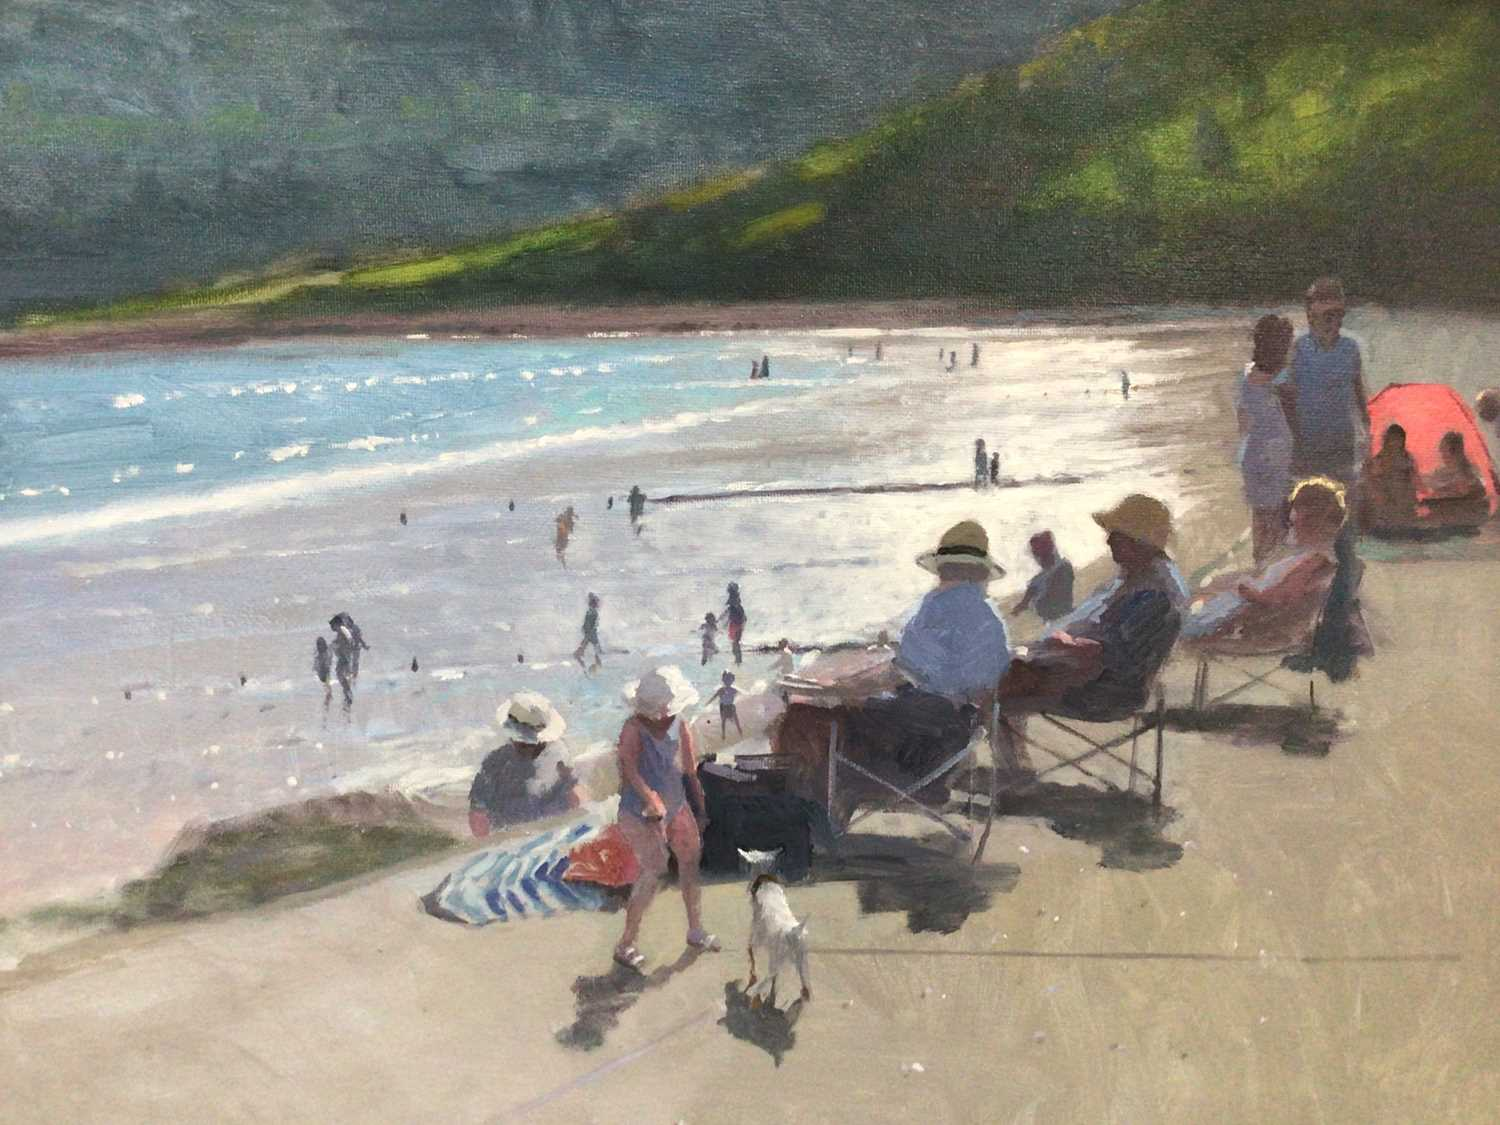 Lot 51 - Peter Z. Phillips, A sunny day at the beach, oil on canvas, signed and dated '21, in gilt frame. 35 x 46cm.